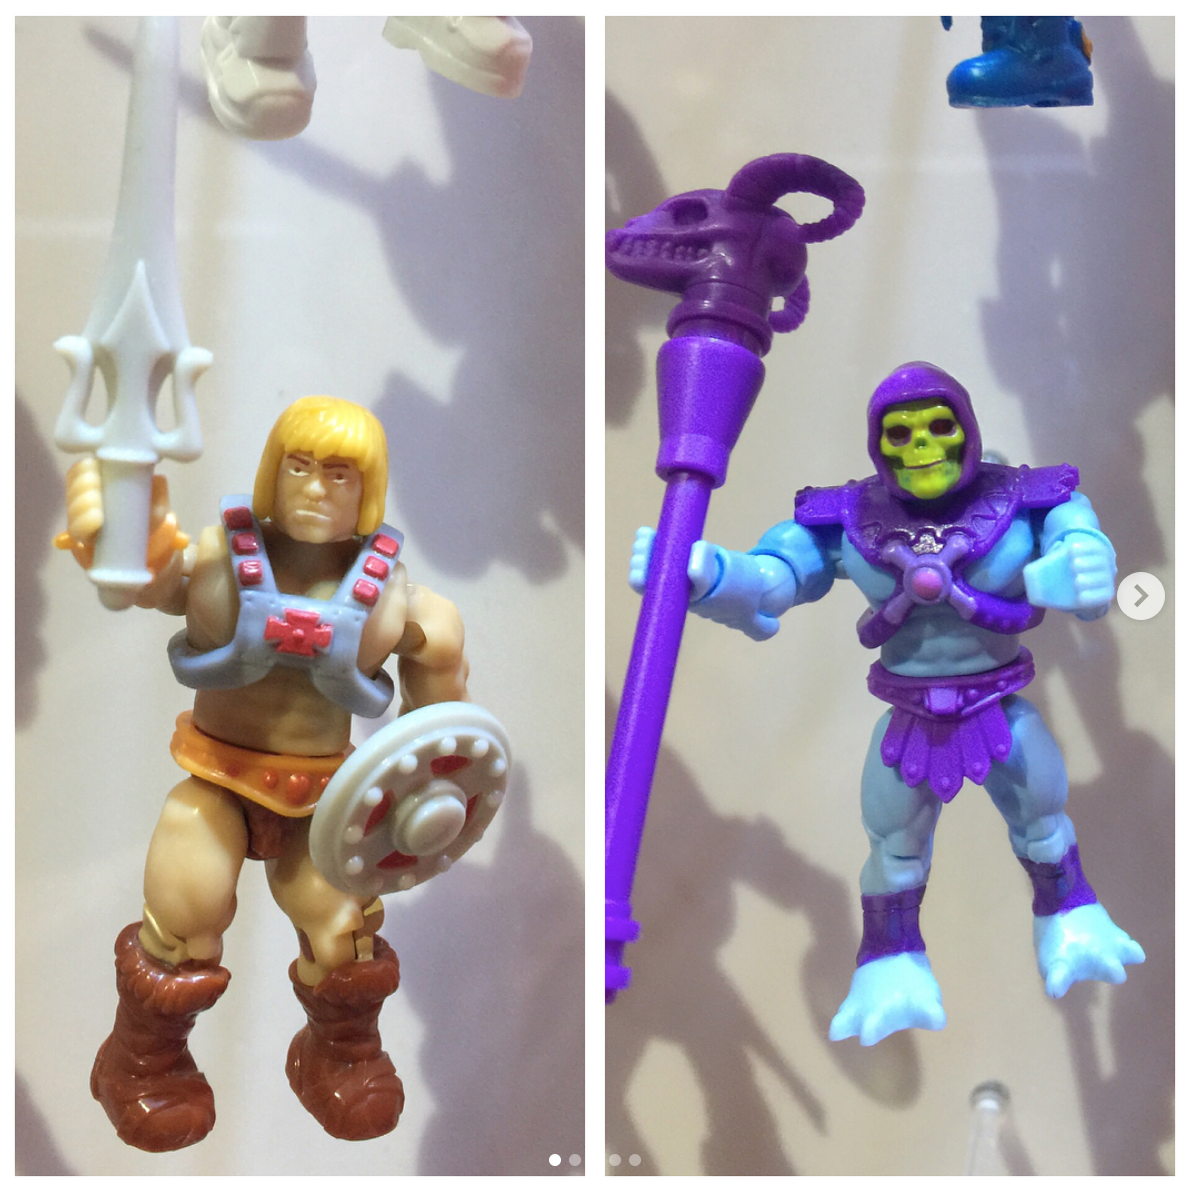 SDCC 2017 – Mega Construx To Release Masters Of The Universe He-Man Line